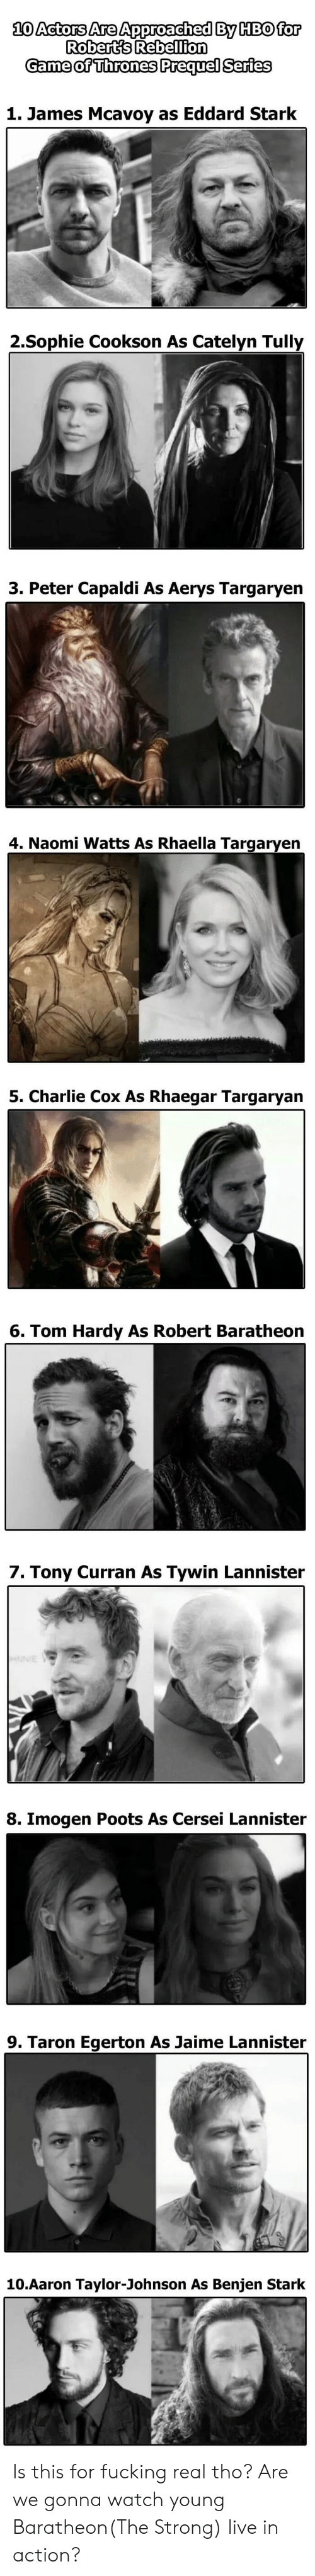 Charlie, Fucking, and Game of Thrones: 10 Actors Are Approached By HBO for  Robert's Rebellion  Game of Thrones Prequel Series  1. James Mcavoy as Eddard Stark  2.Sophie Cookson As Catelyn Tully  3. Peter Capaldi As Aerys Targaryen  4. Naomi Watts As Rhaella Targaryen  5. Charlie Cox As Rhaegar Targaryan  6. Tom Hardy As Robert Baratheon  7. Tony Curran As Tywin Lannister  8. Imogen Poots As Cersei Lannister  9. Taron Egerton As Jaime Lannister  10.Aaron Taylor-Johnson As Benjen Stark Is this for fucking real tho? Are we gonna watch young Baratheon(The Strong) live in action?